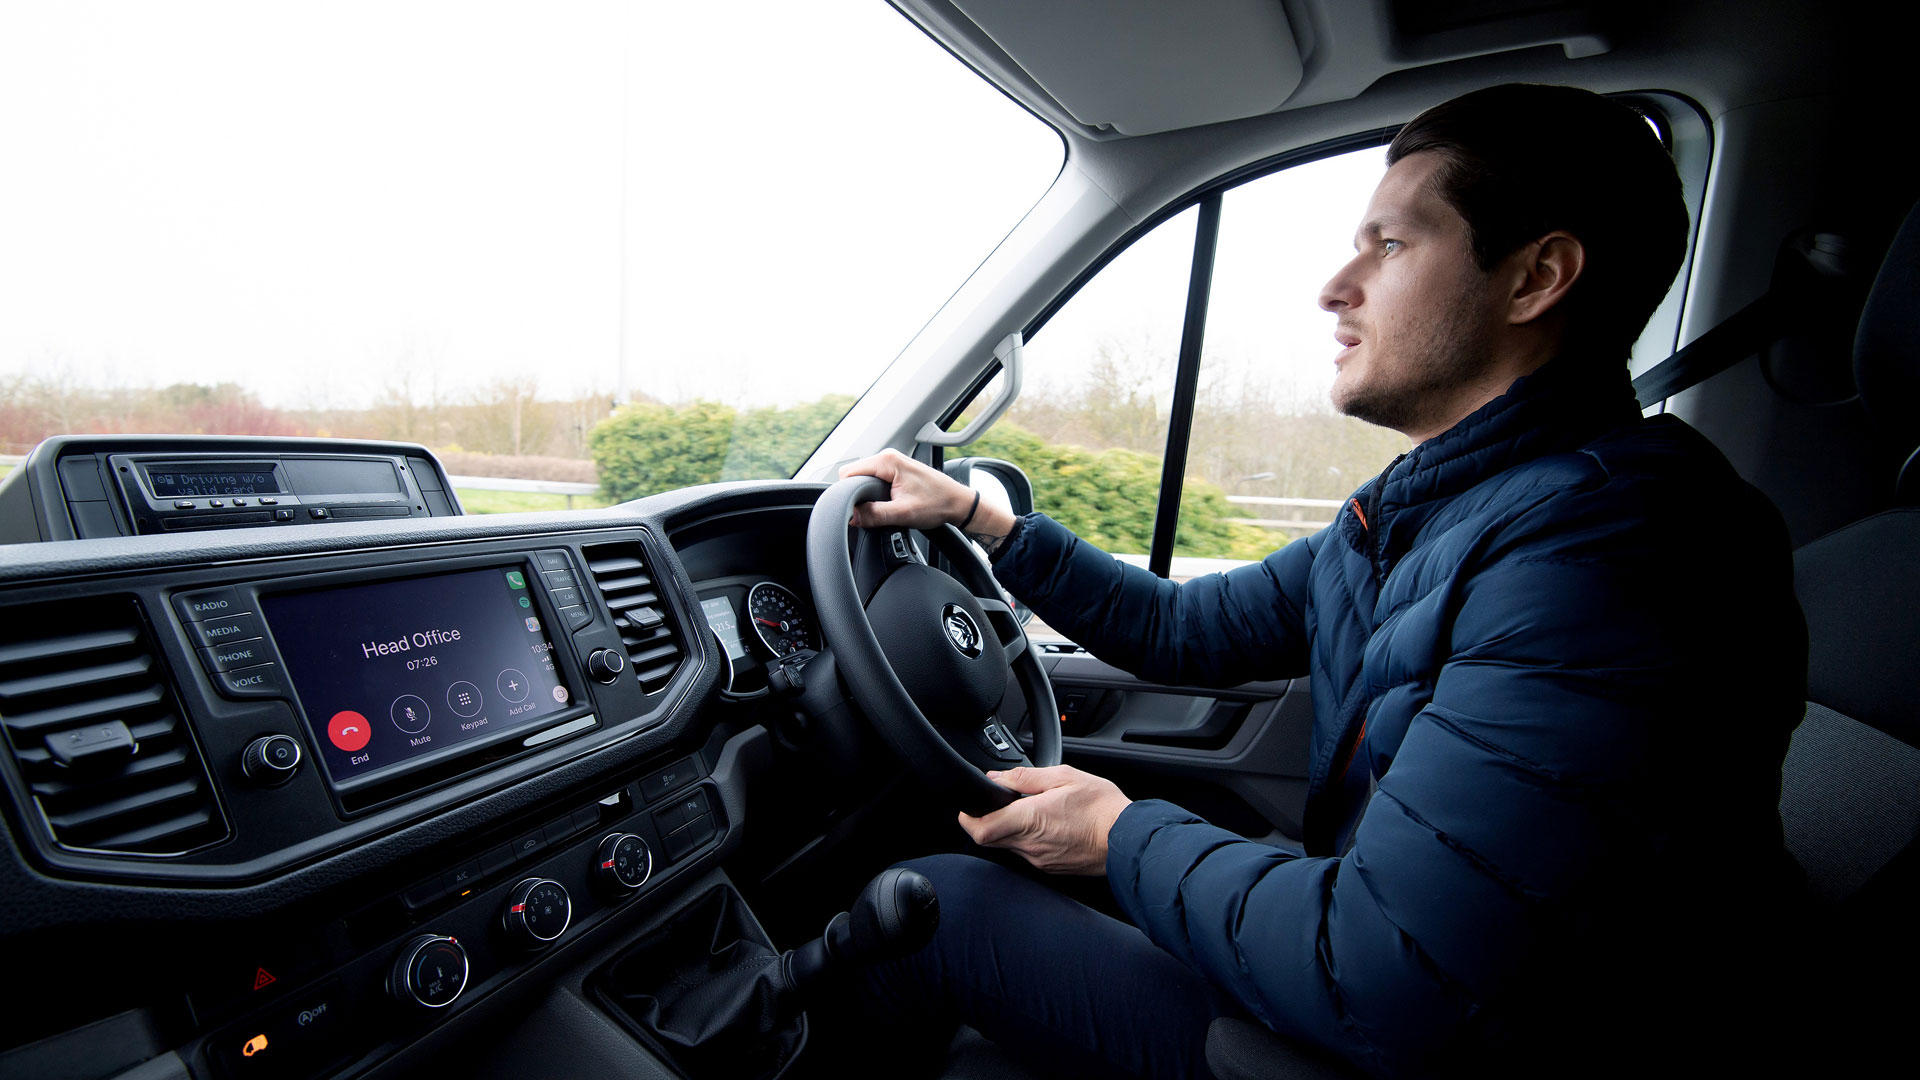 Van driver on the phone to head office